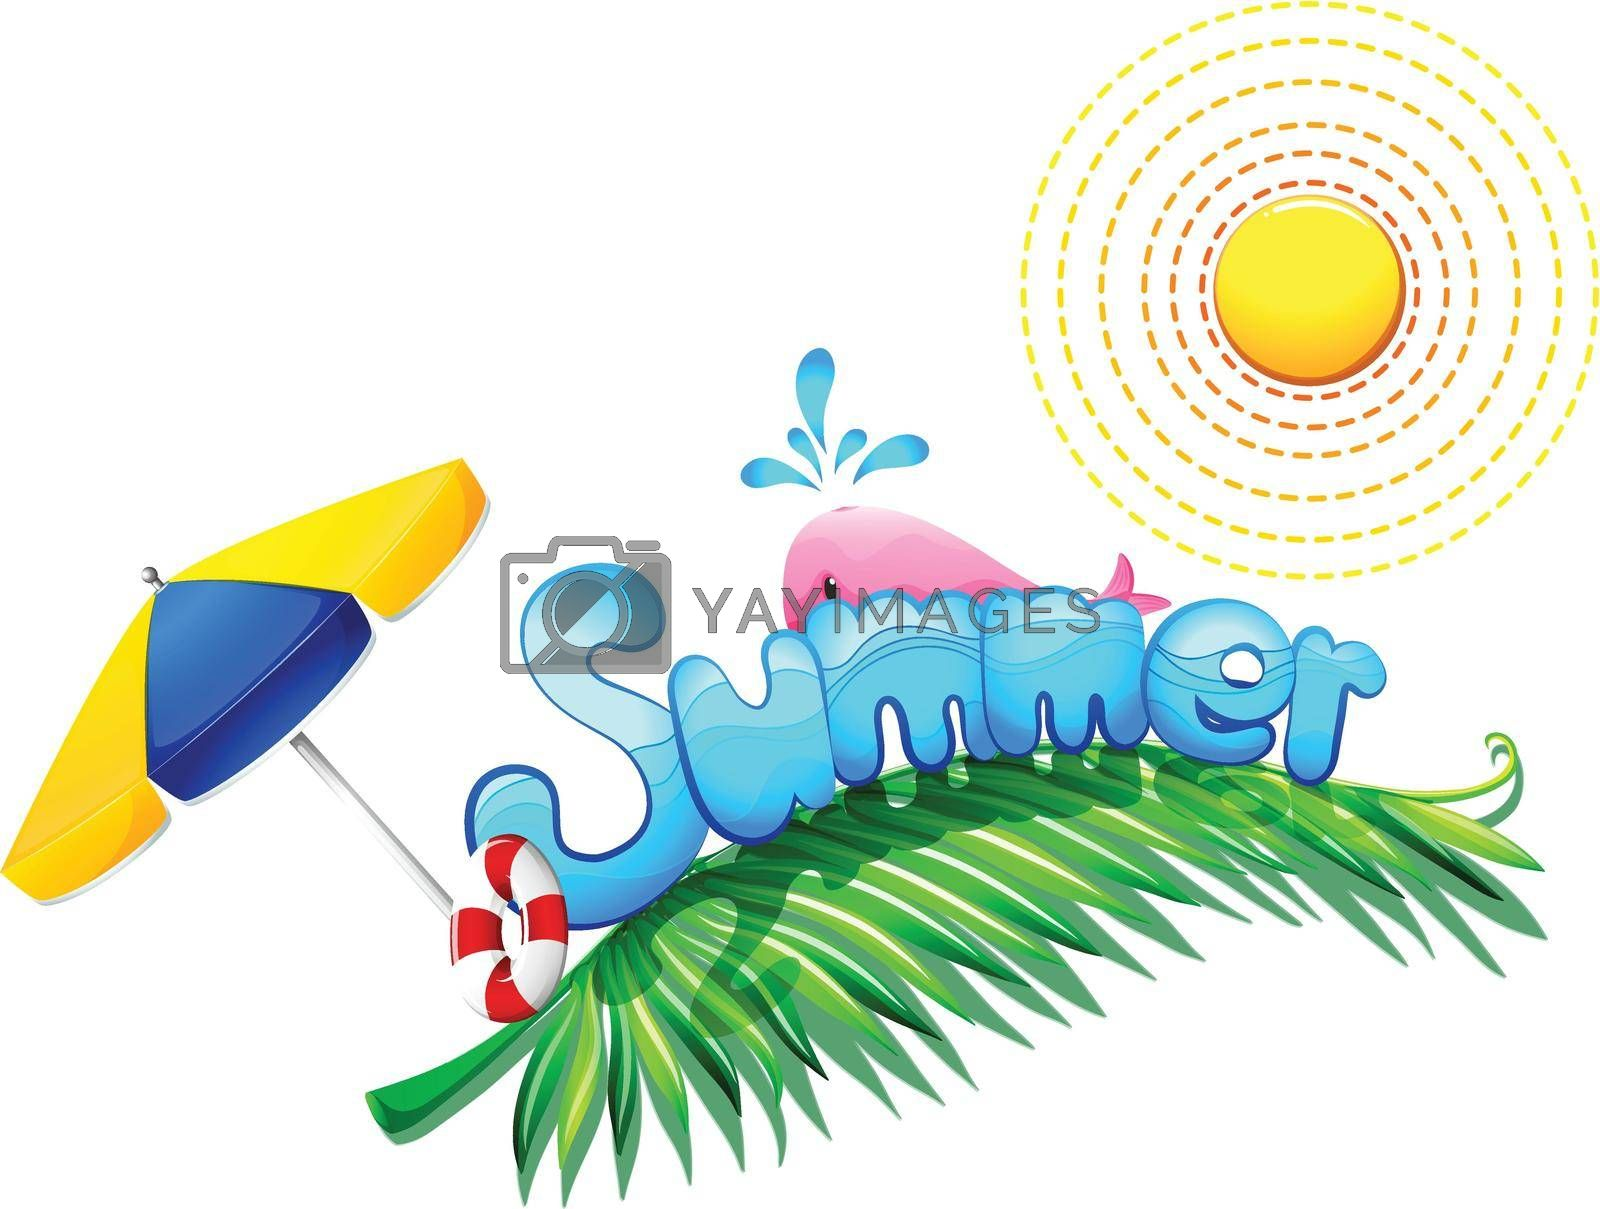 Royalty free image of Summer weather by iimages